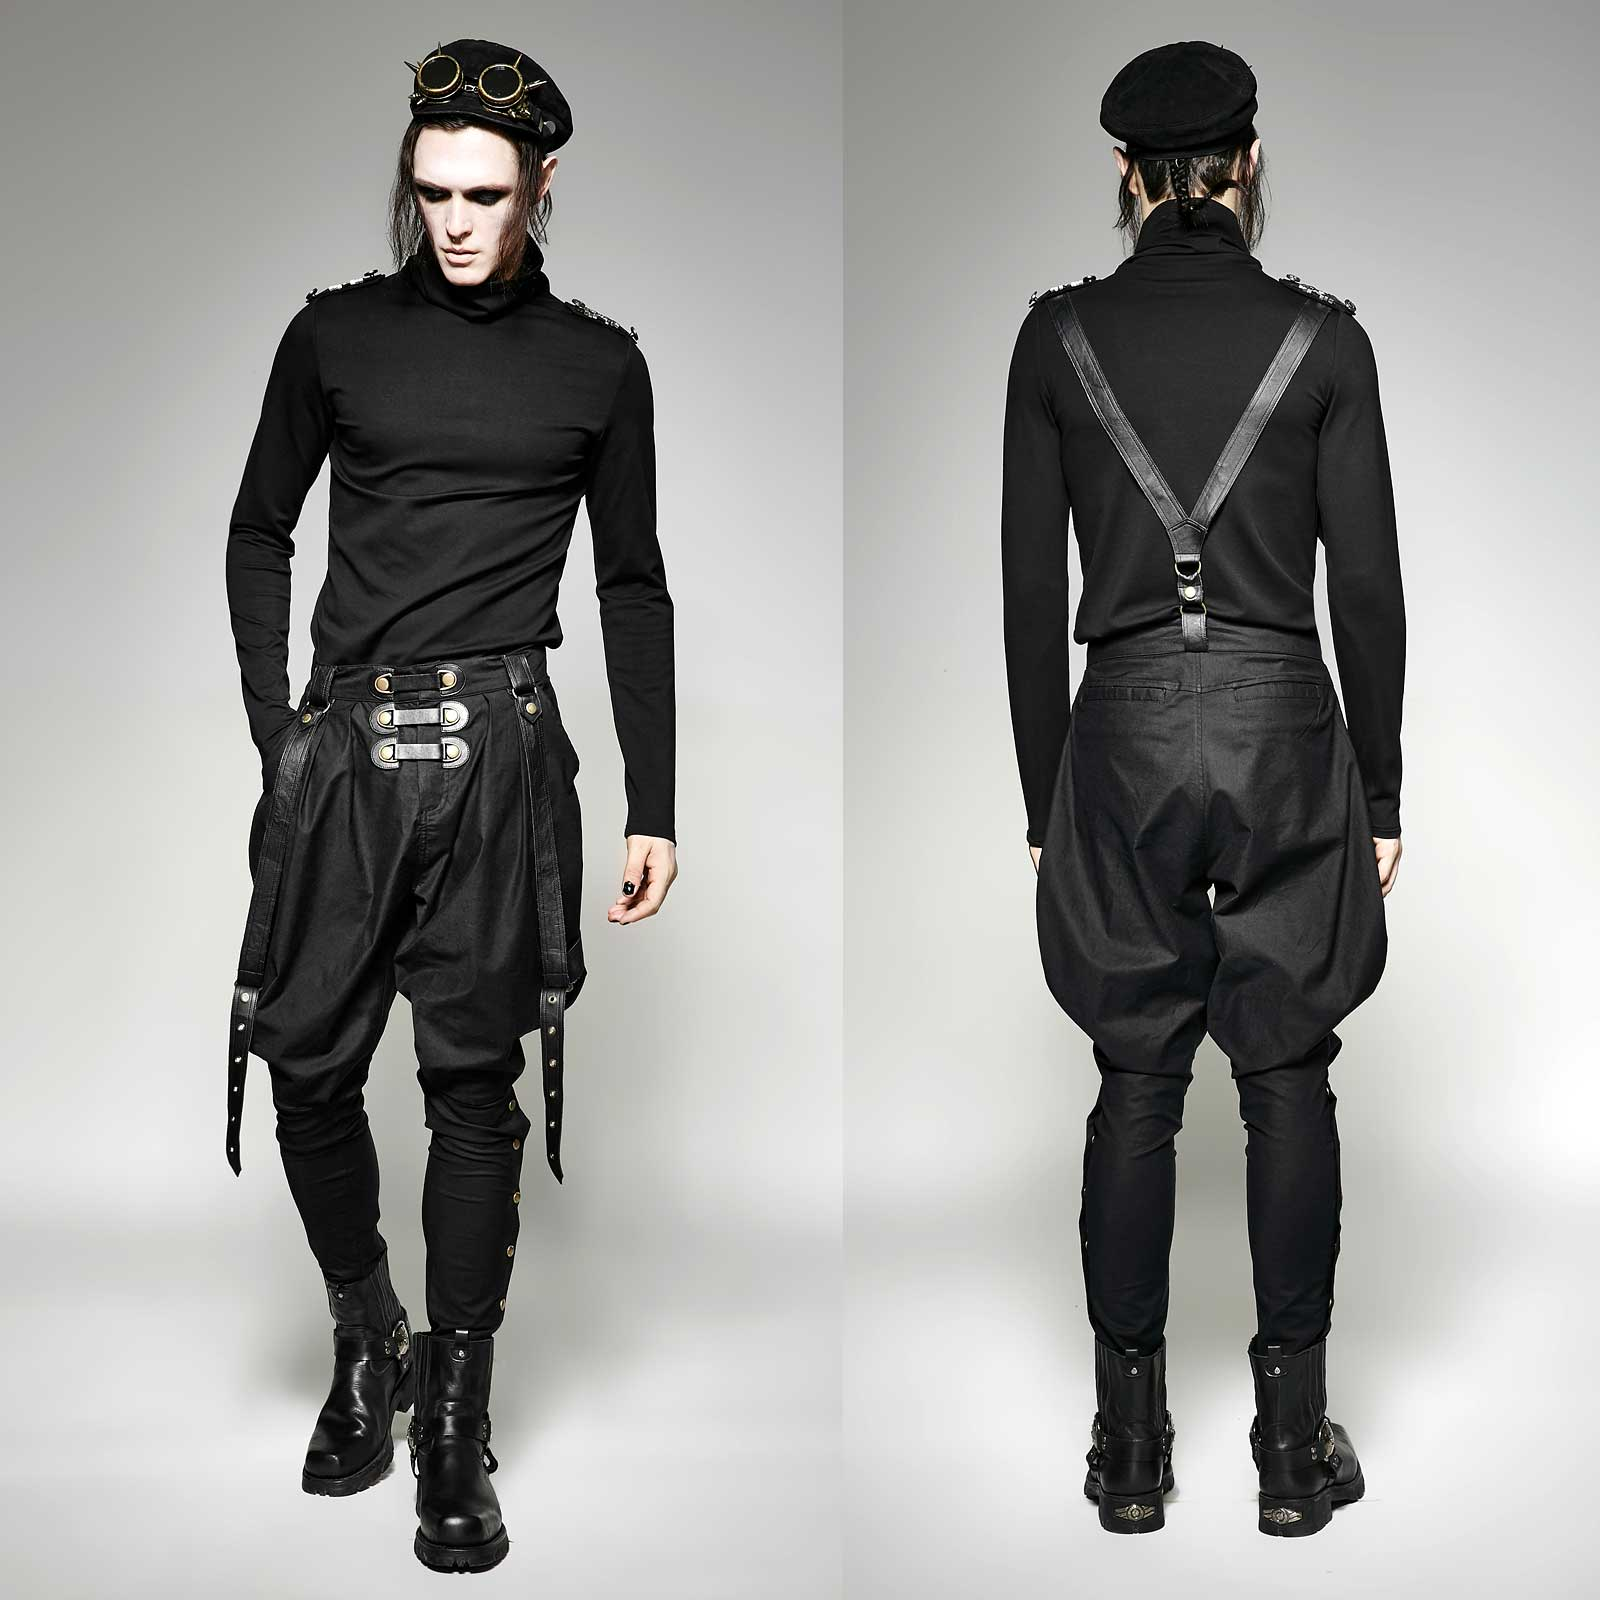 punk rave steampunk reiterhose gothic stiefel hose uniform pants goth breeches ebay. Black Bedroom Furniture Sets. Home Design Ideas